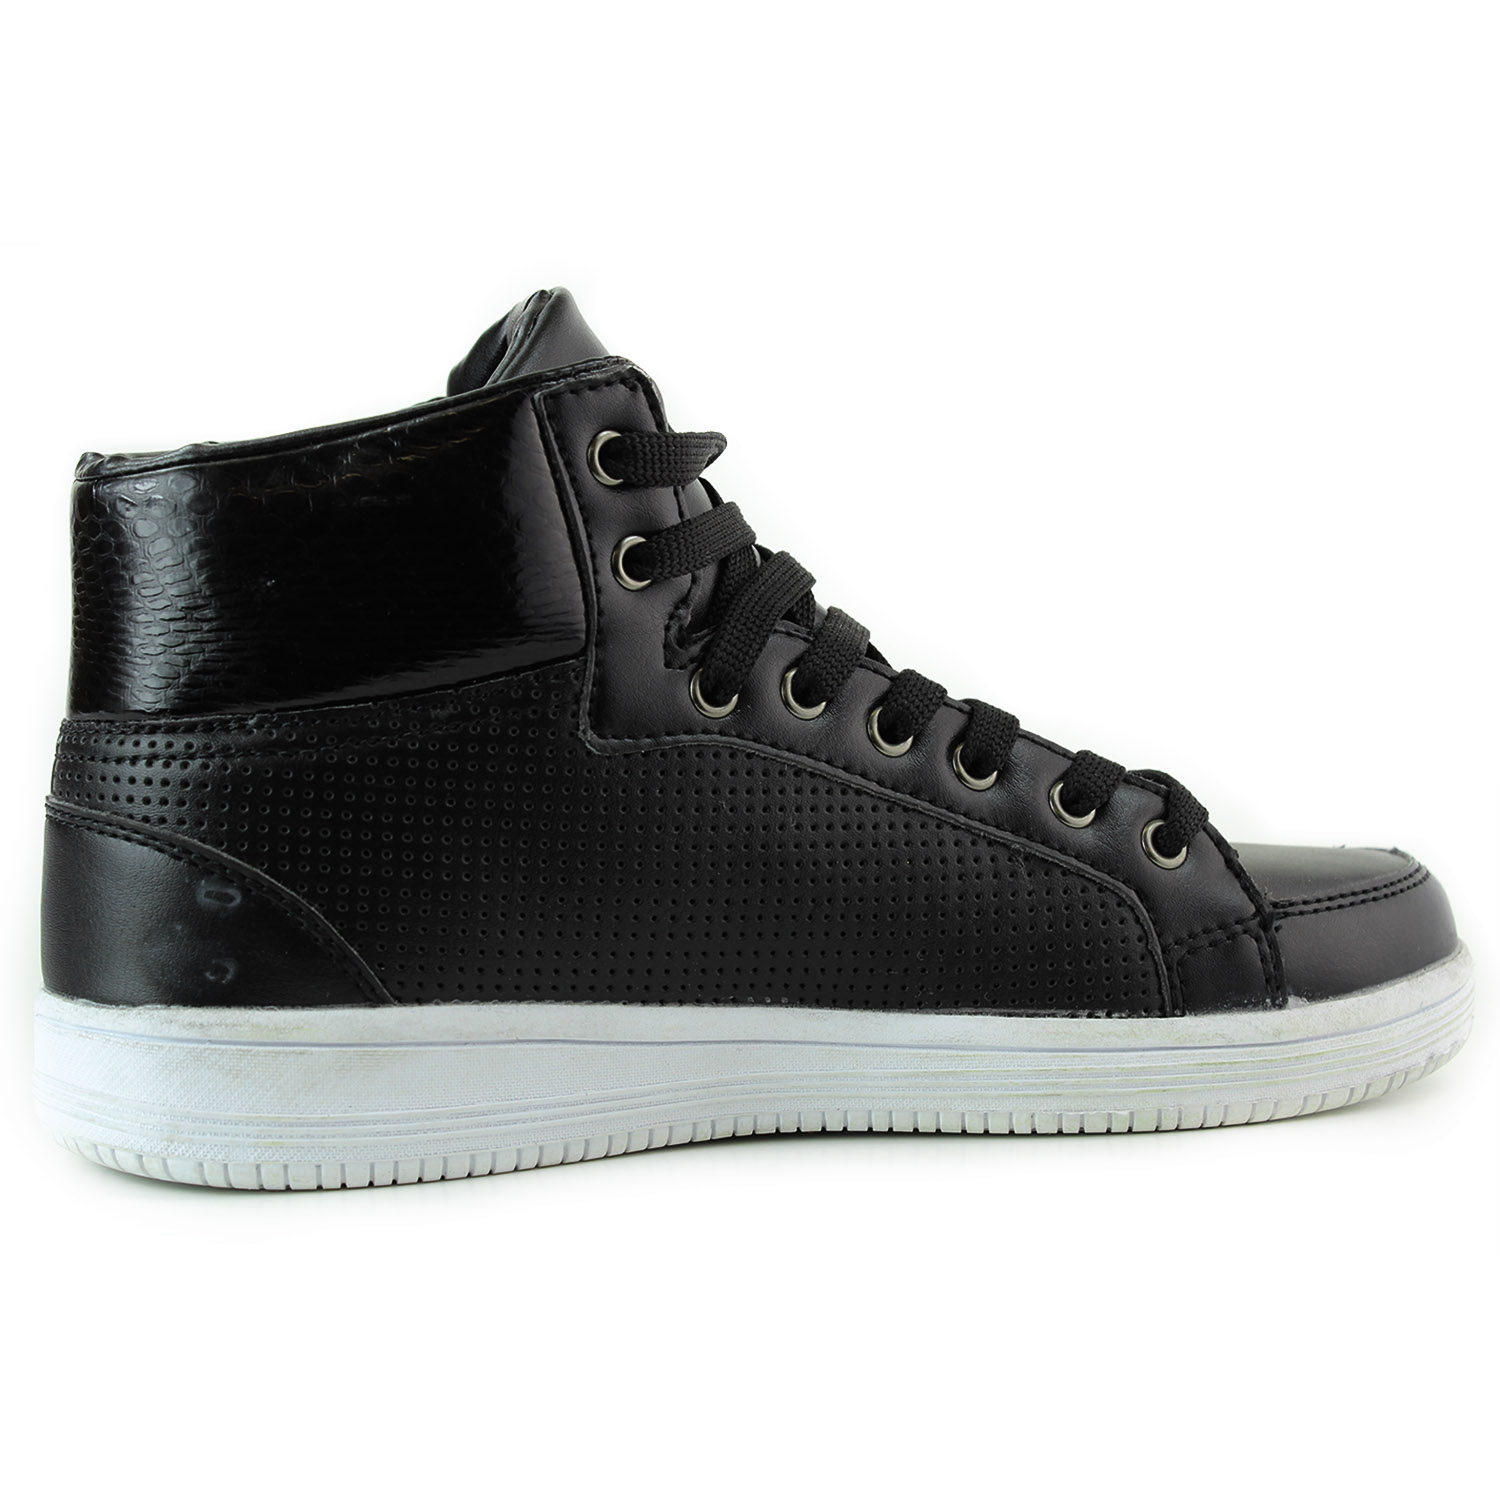 Women's Comfortable Breatheable Lace Up High Top Fashion ...